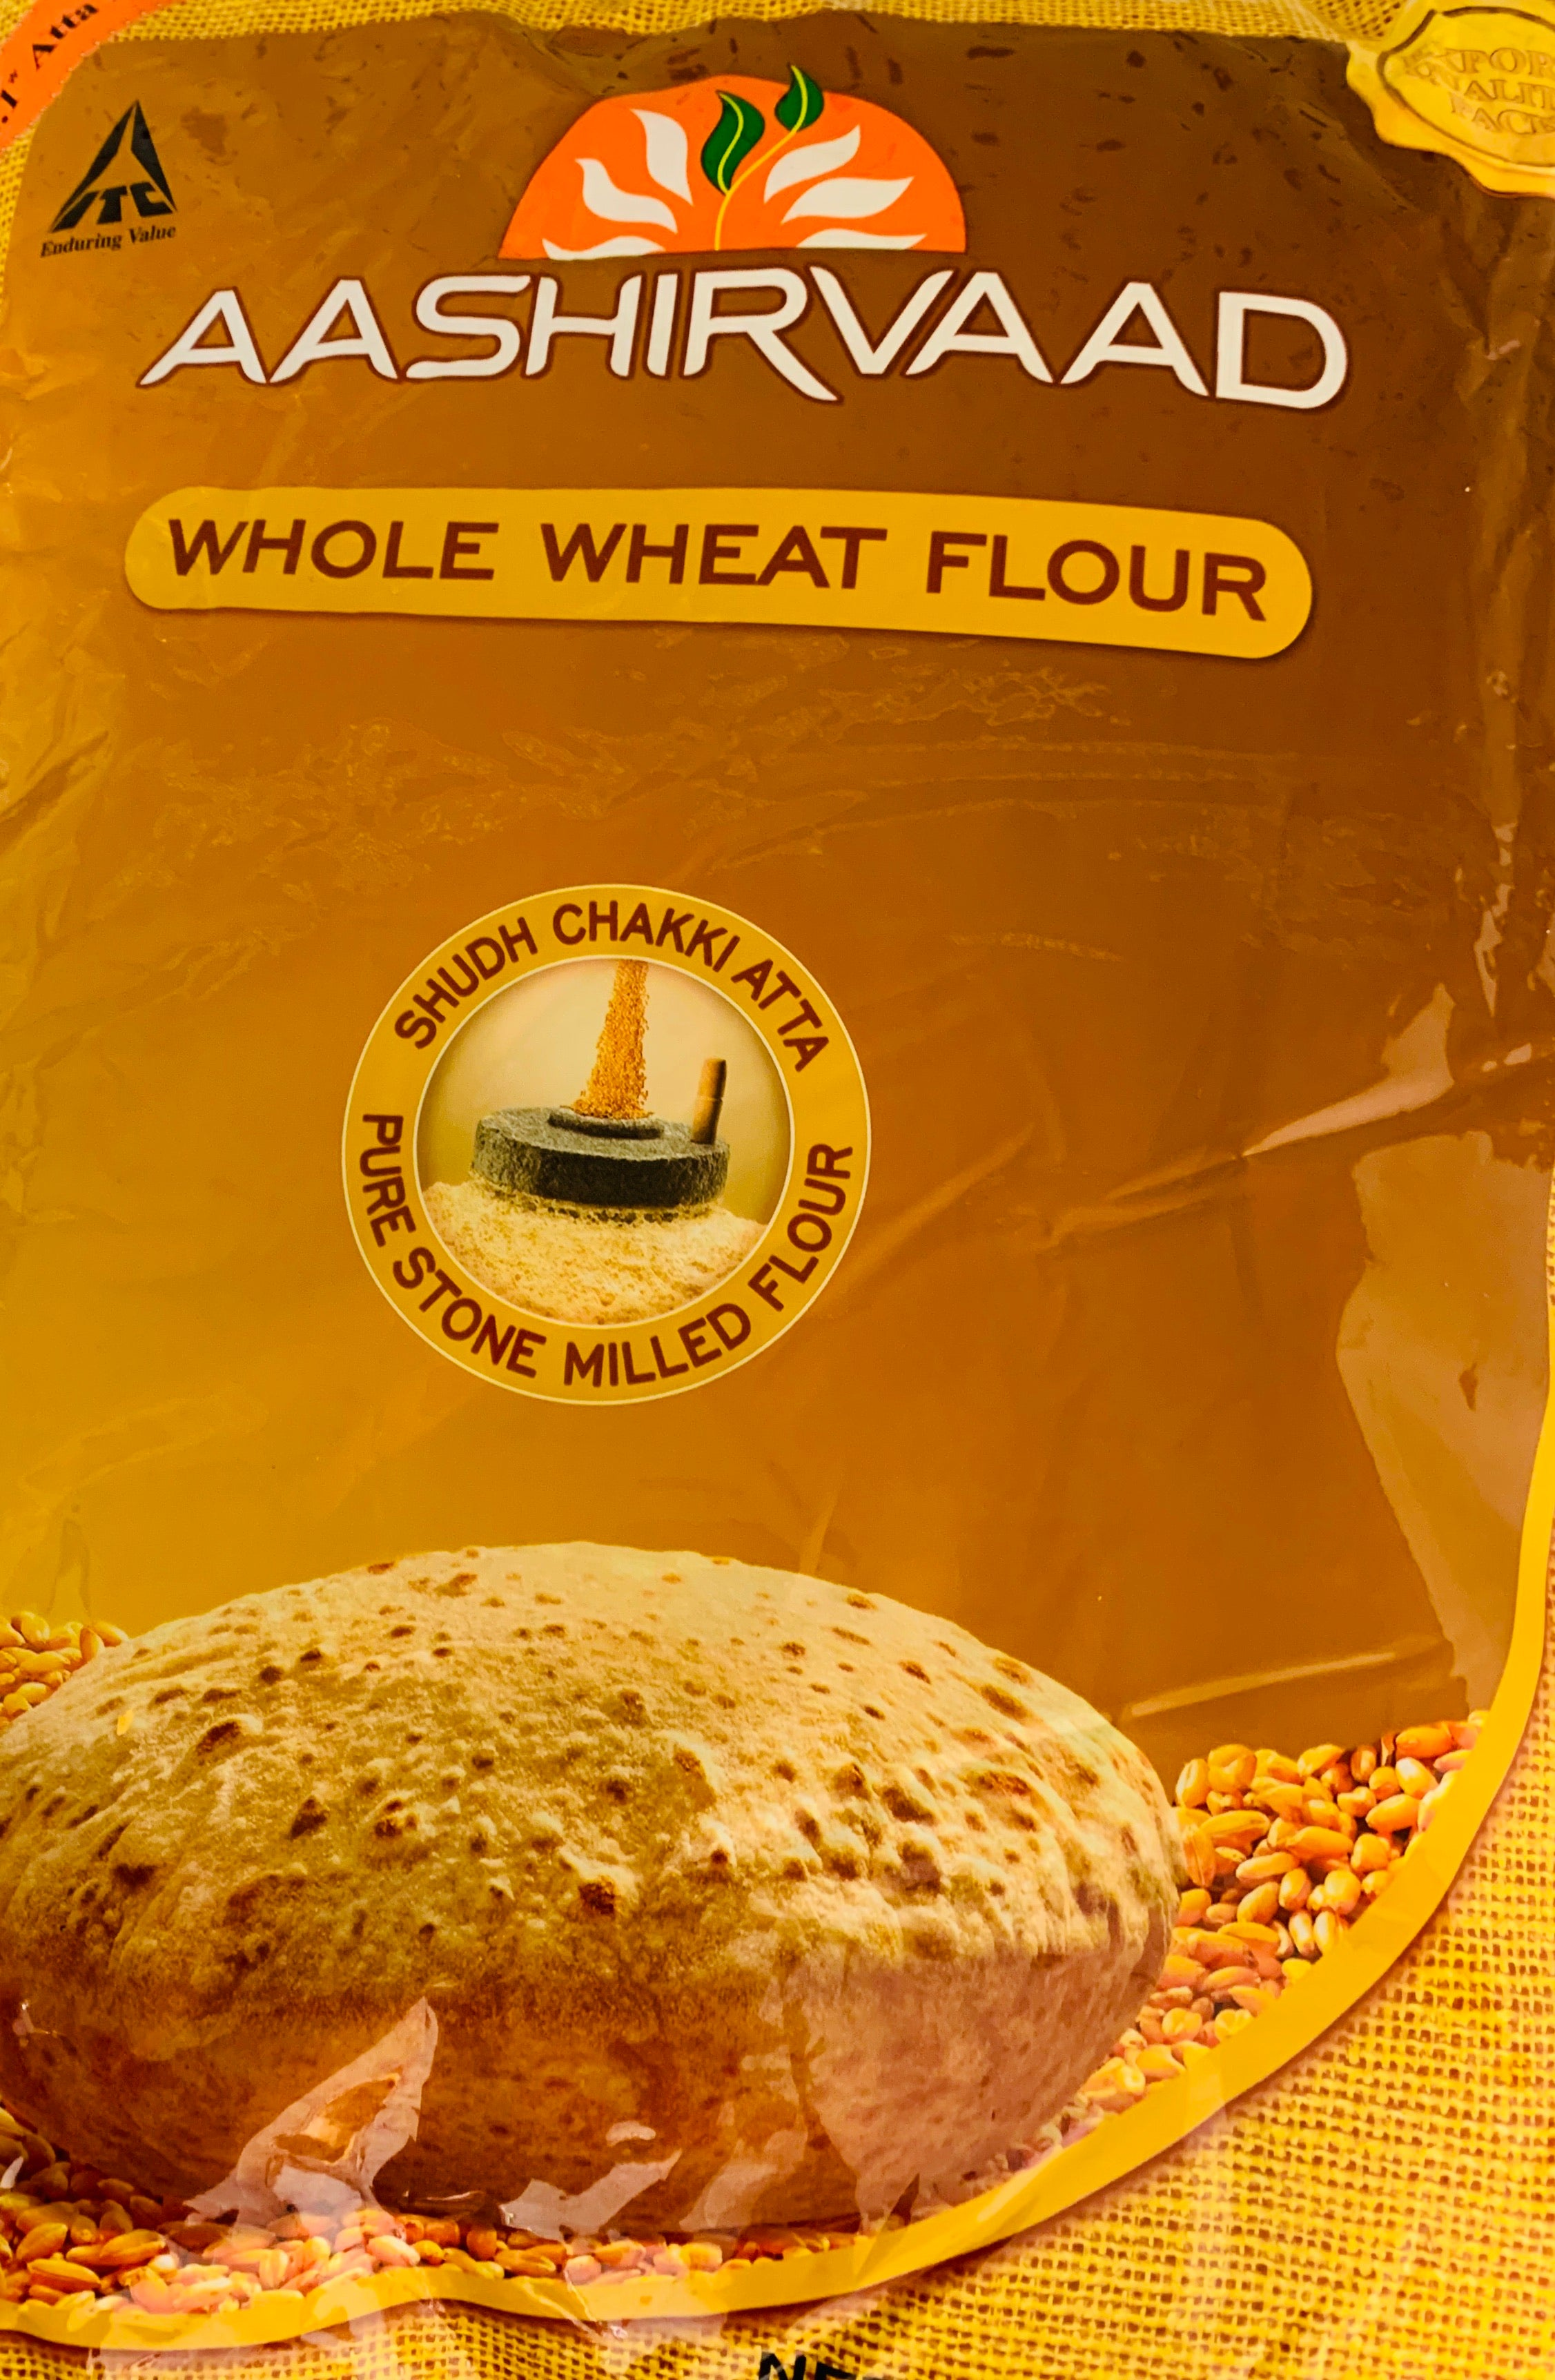 Whole Wheat Atta (Aashirwad - 10 lbs)